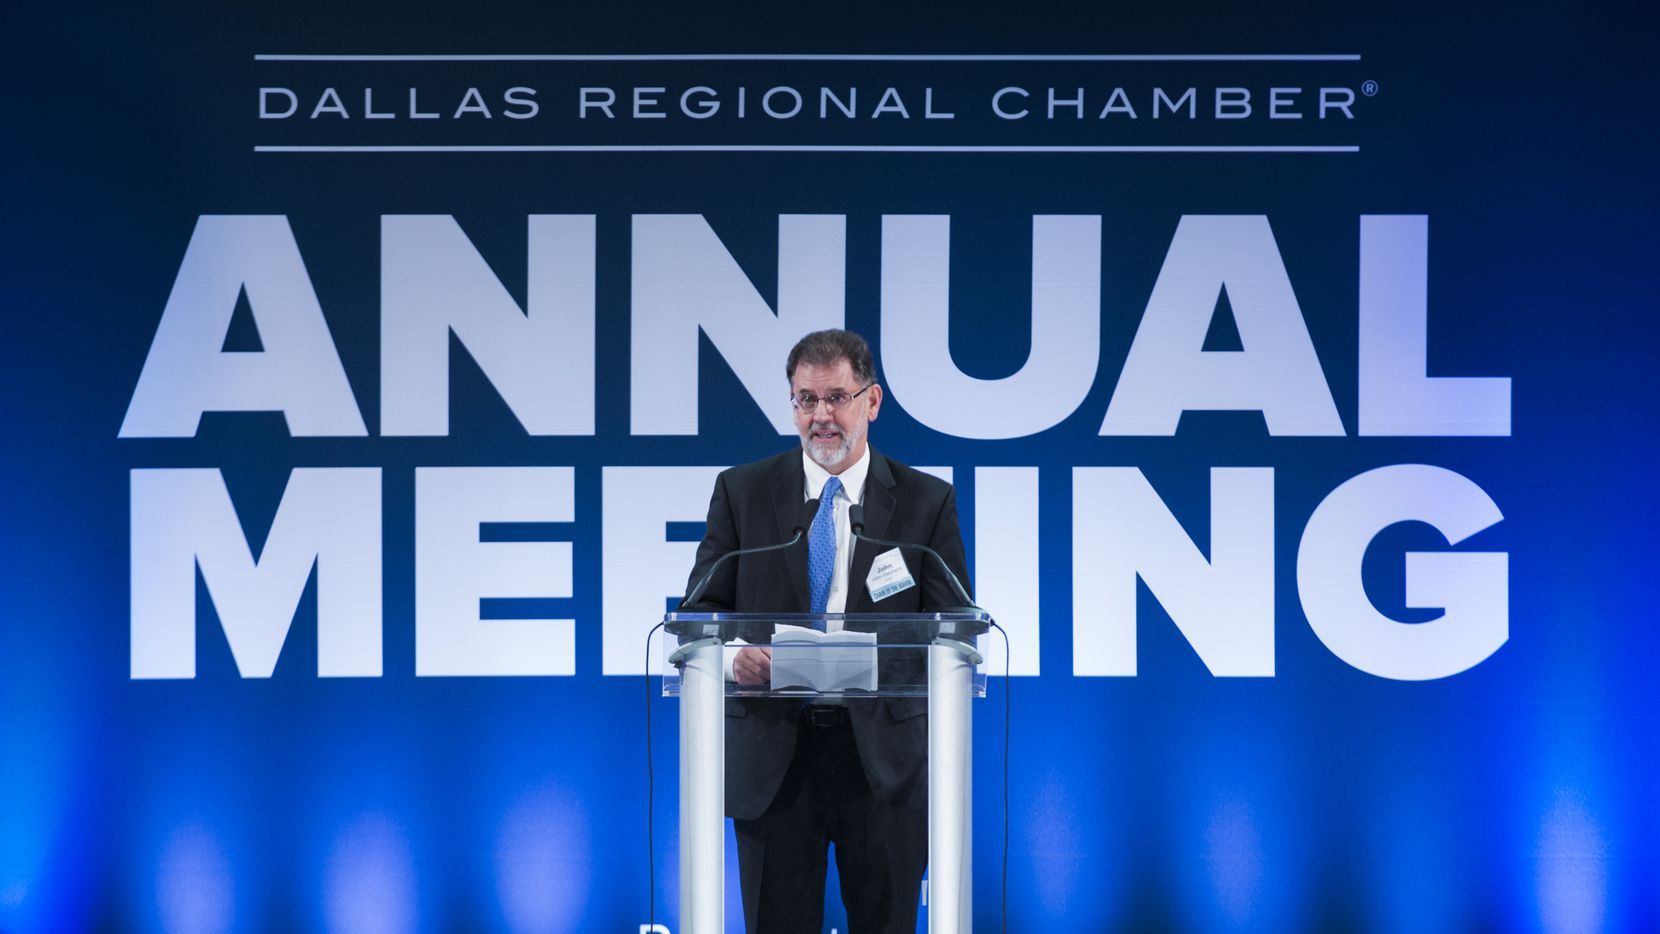 AT&T CFO John Stephens spoke during the Dallas Regional Chamber annual meeting in 2019.